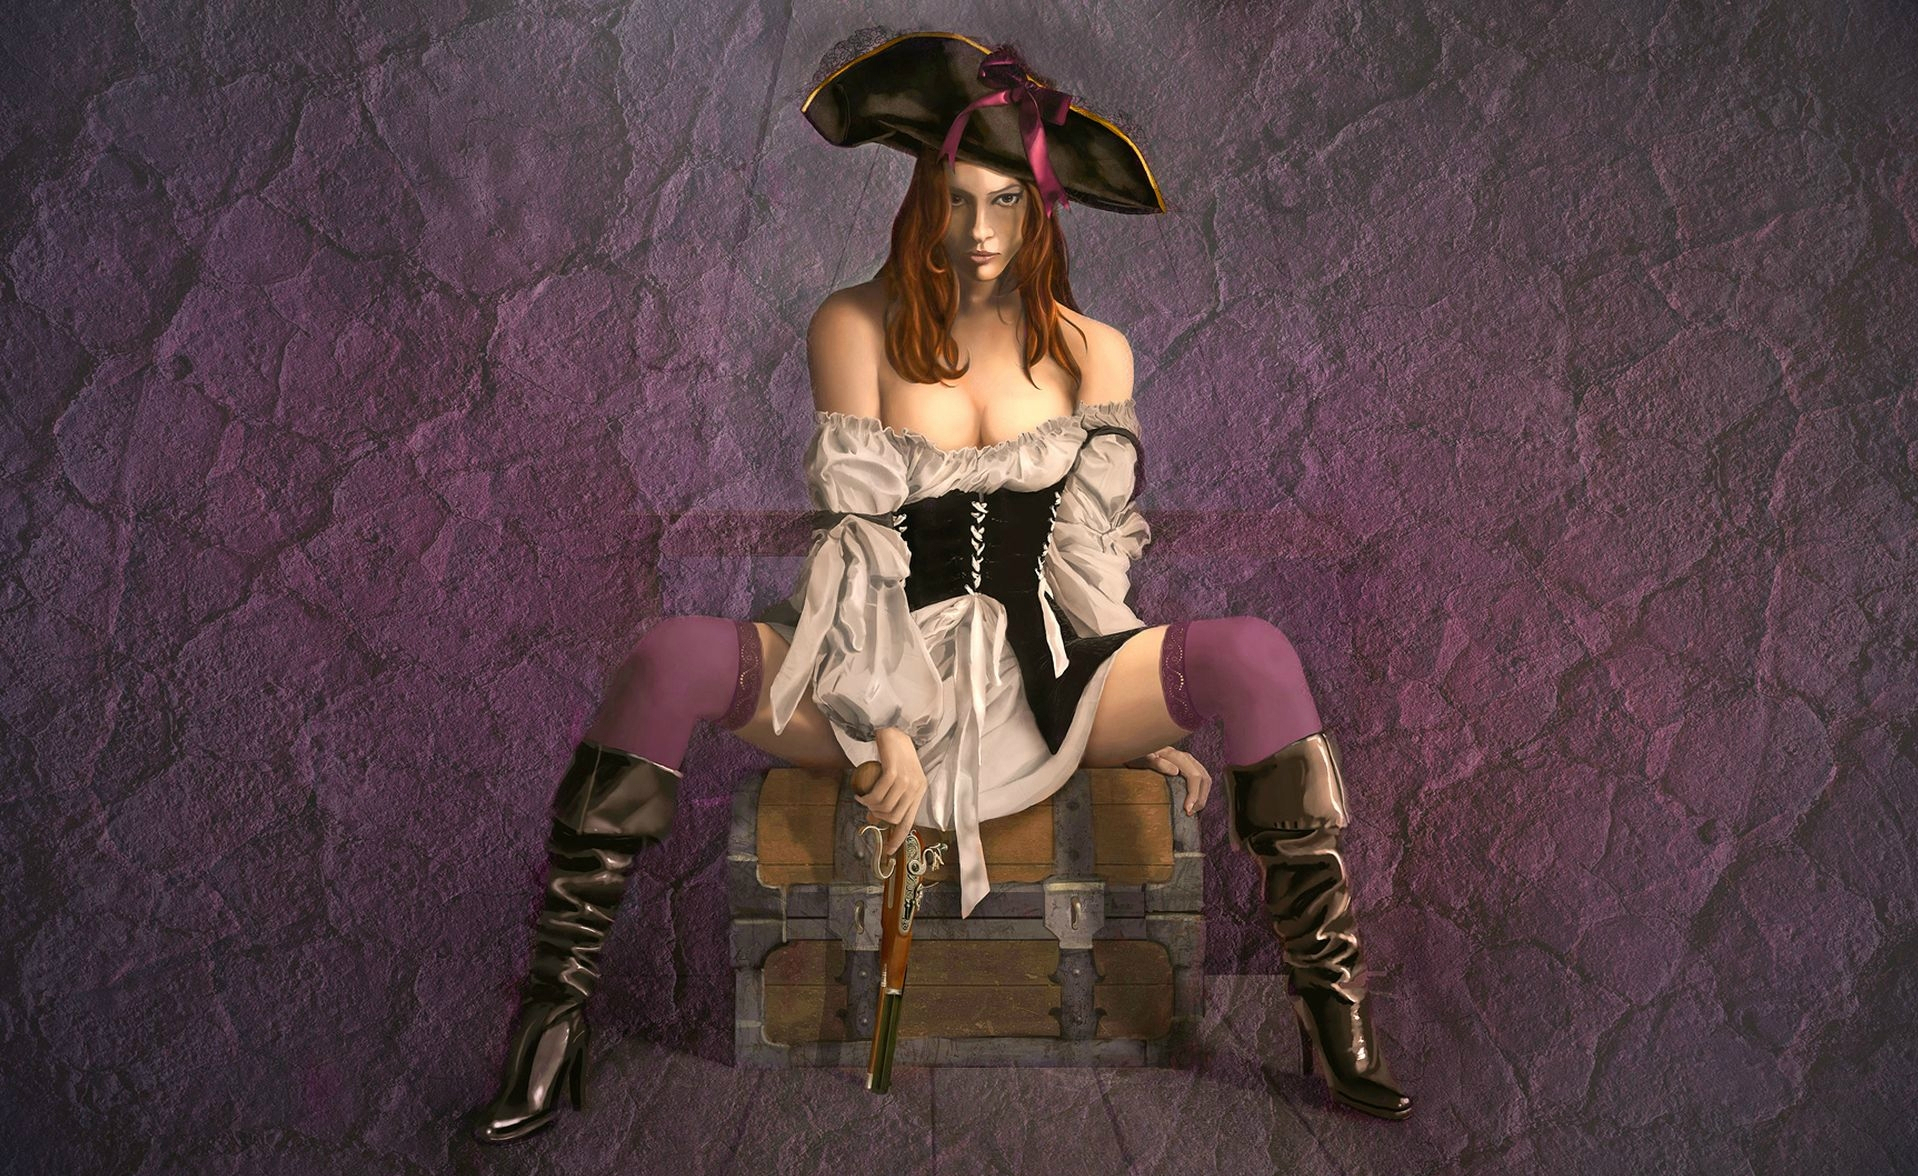 Fantasy - Pirate  Beautiful Gun Hat Flint Lock Treasure Leather Boots Wallpaper